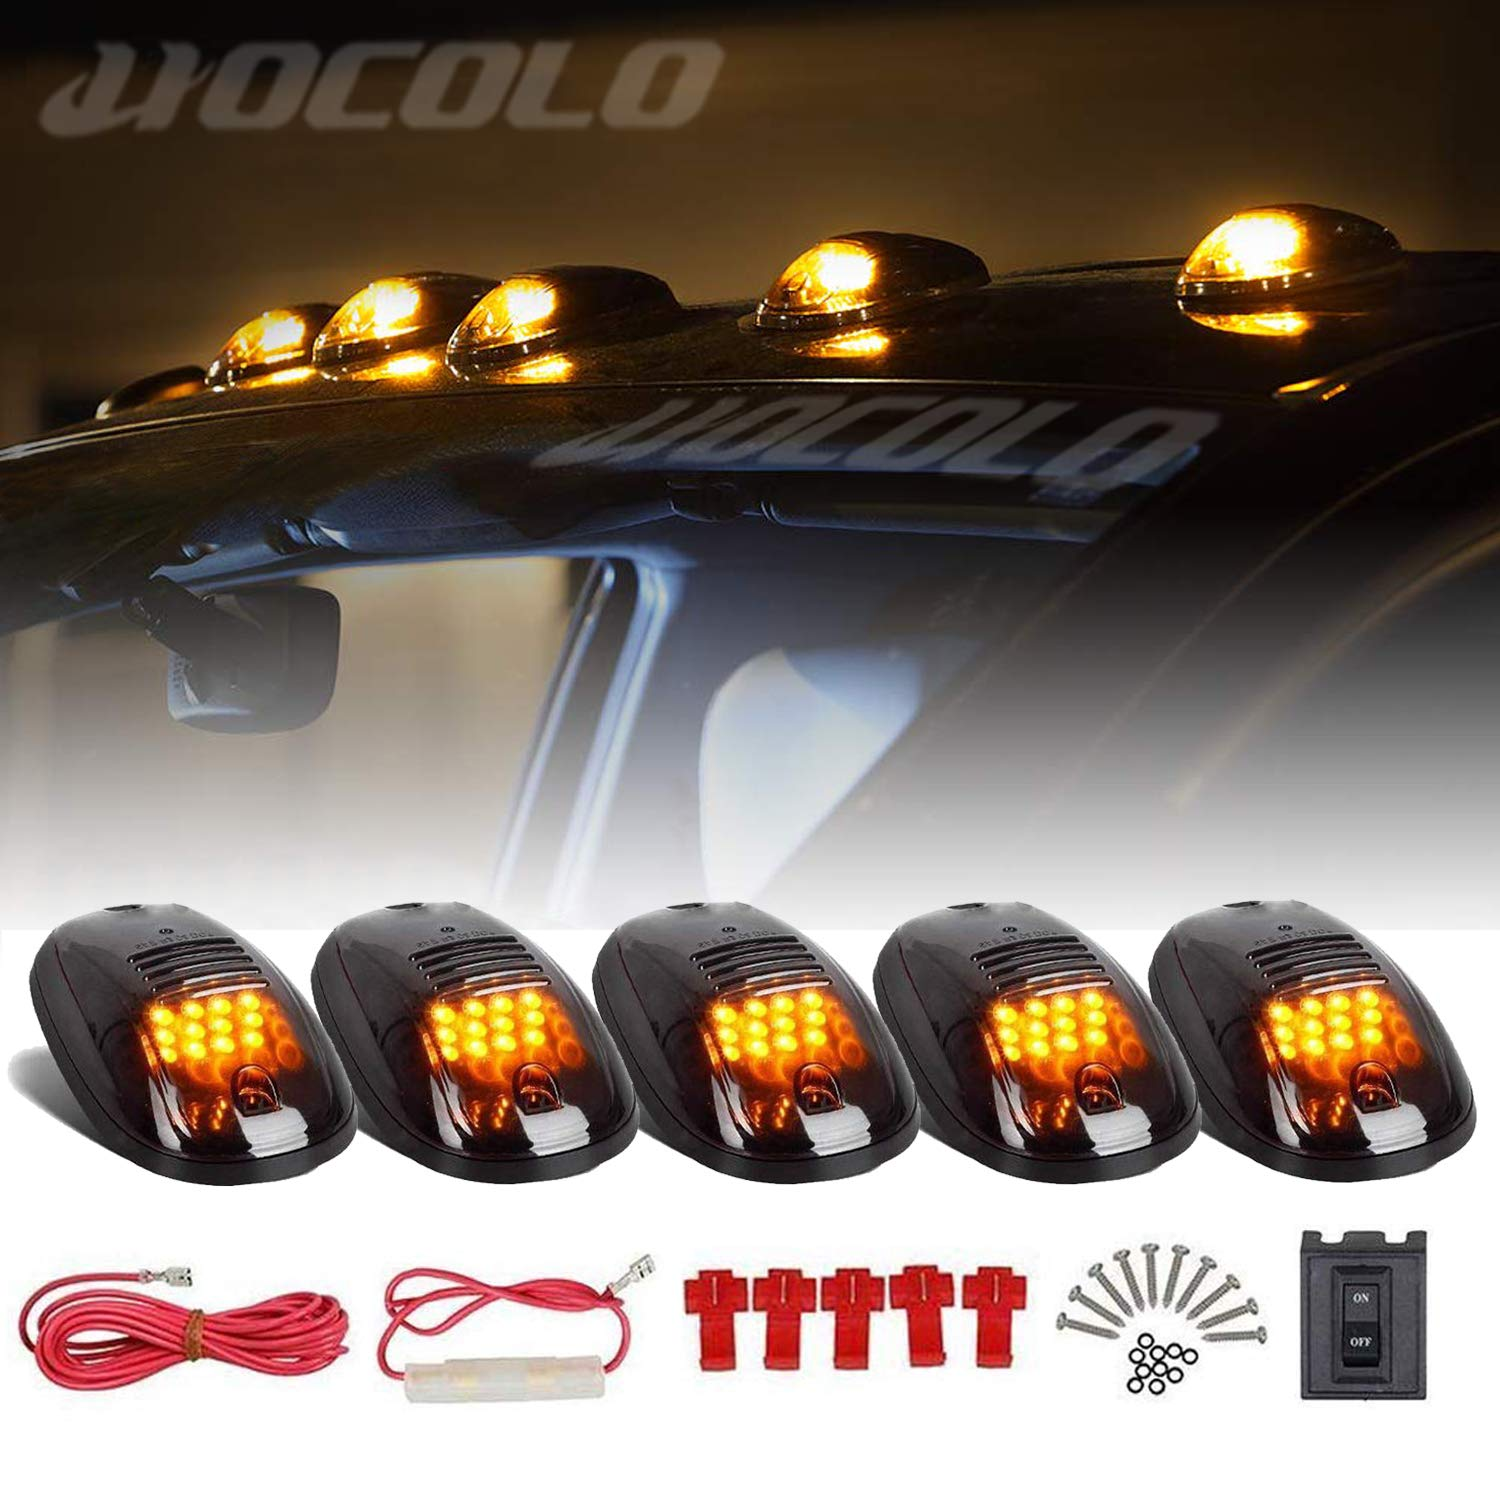 5x HOCOLO Cab Marker Light 16LED Amber Roof Running Top Lights w//Wiring Harness Replacement for 1973-1997 Ford F150 F250 F350 F Super Duty Pickup Trucks Assembly itself Owned LED Chip Rhombus Smoked Cab Marker Assembly+16 Amber Light, Without T10